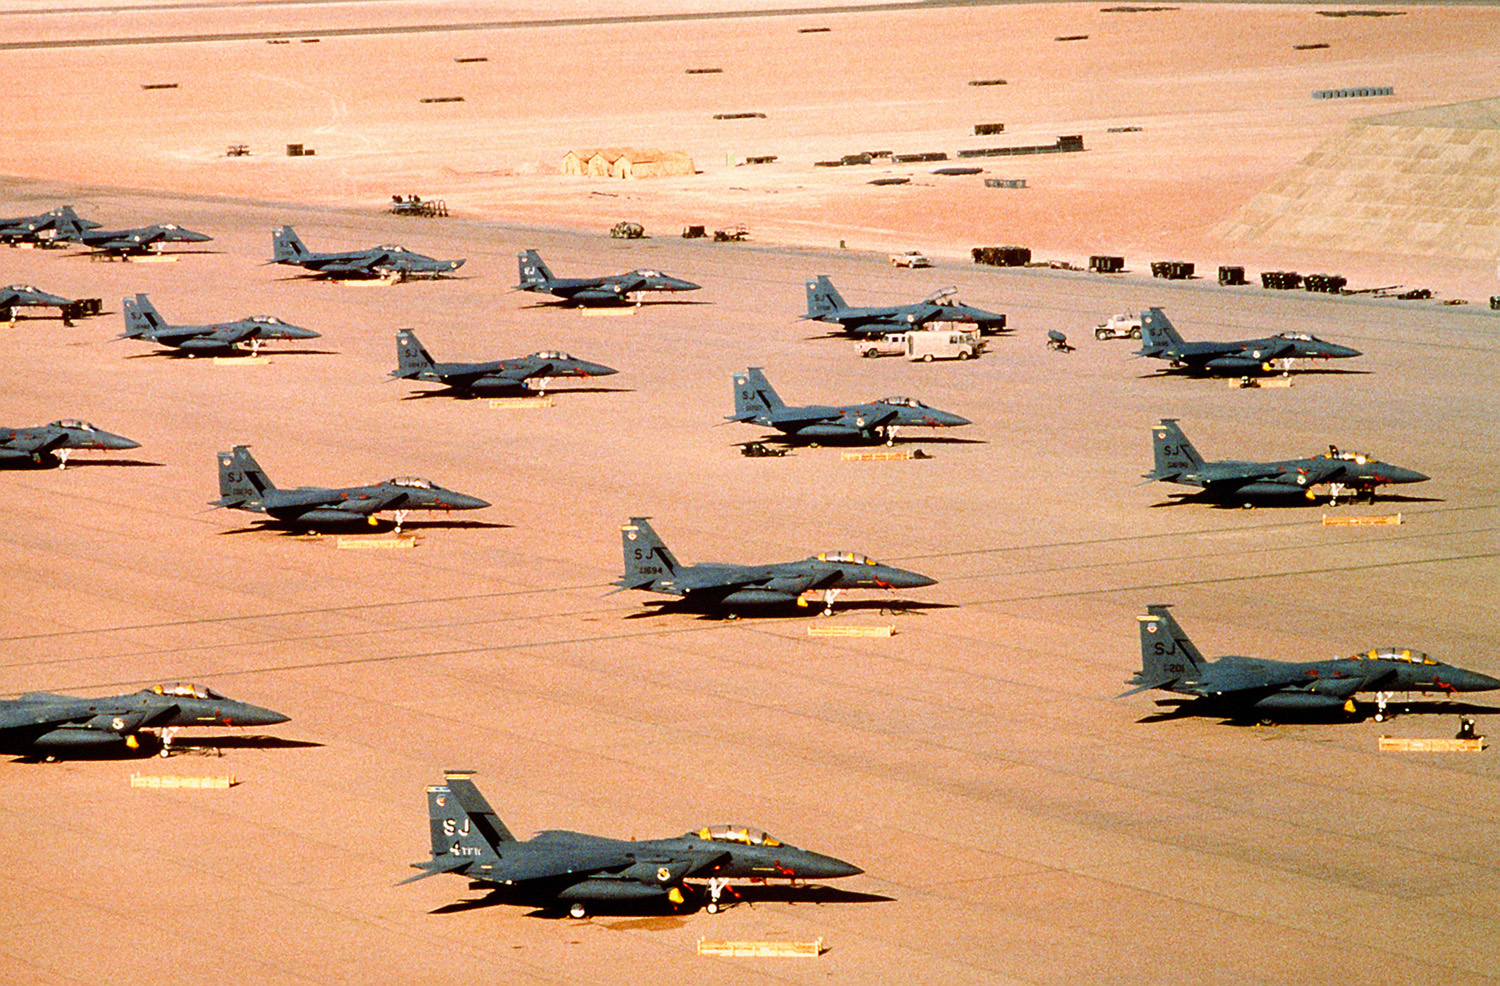 Flying and fighting series from around the world f 15e eagle fighter aircraft of the 4th tactical fighter wing seymour johnson air force base nc are parked on an air field during operation desert fandeluxe Image collections